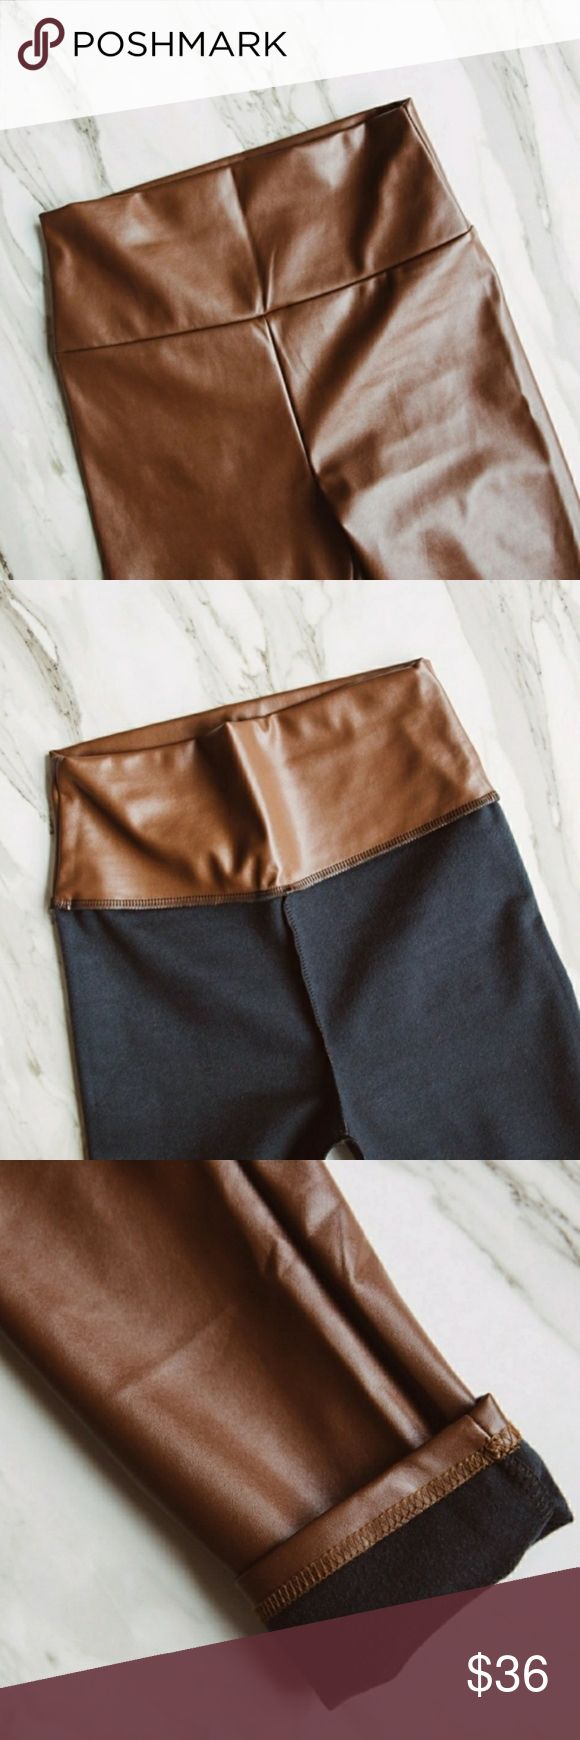 """""""Coffee Express"""" stunning liquid legs for miles, vegan leather, animal friendly, high waisted, thick material for a smoothed out look when worn, casual style but incredibly design to hug you in all the right places. Bundle to get a discount.    S: W26-28"""" H28-30""""  M: W28-30"""" H30-32"""" L: W30-32"""" H32-34"""" XL: W32-34"""" H34-36"""" TSH Pants"""